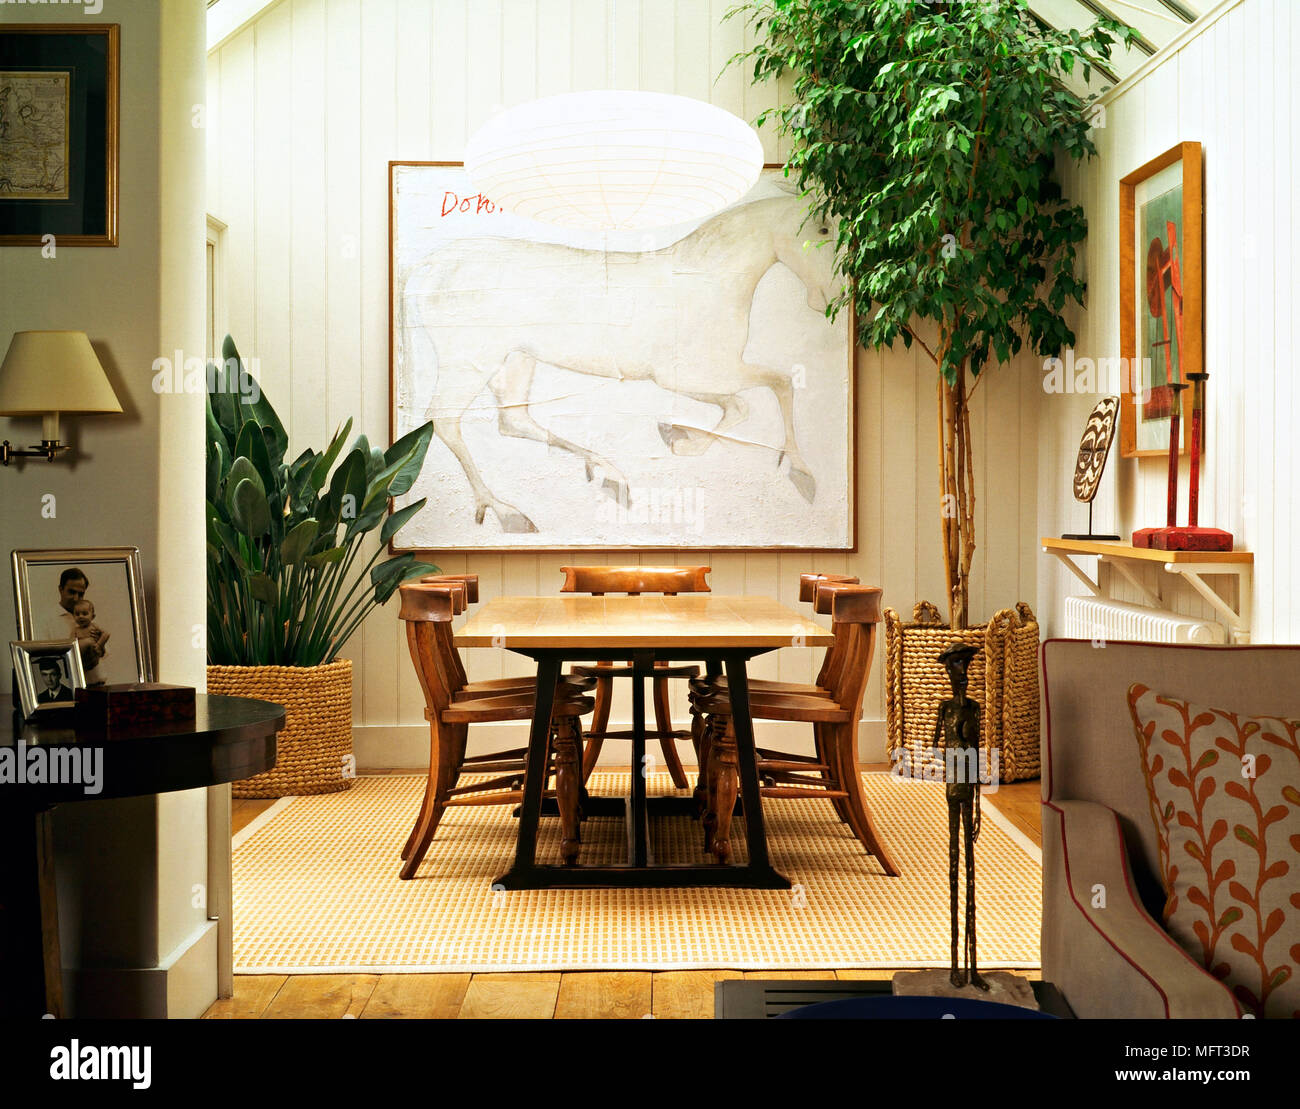 Modern Country Dining Room Wood Panelling Table Chairs Wicker Planters  Indoor Plants Interiors Rooms Double Room Through Room Through Room Natural  Co